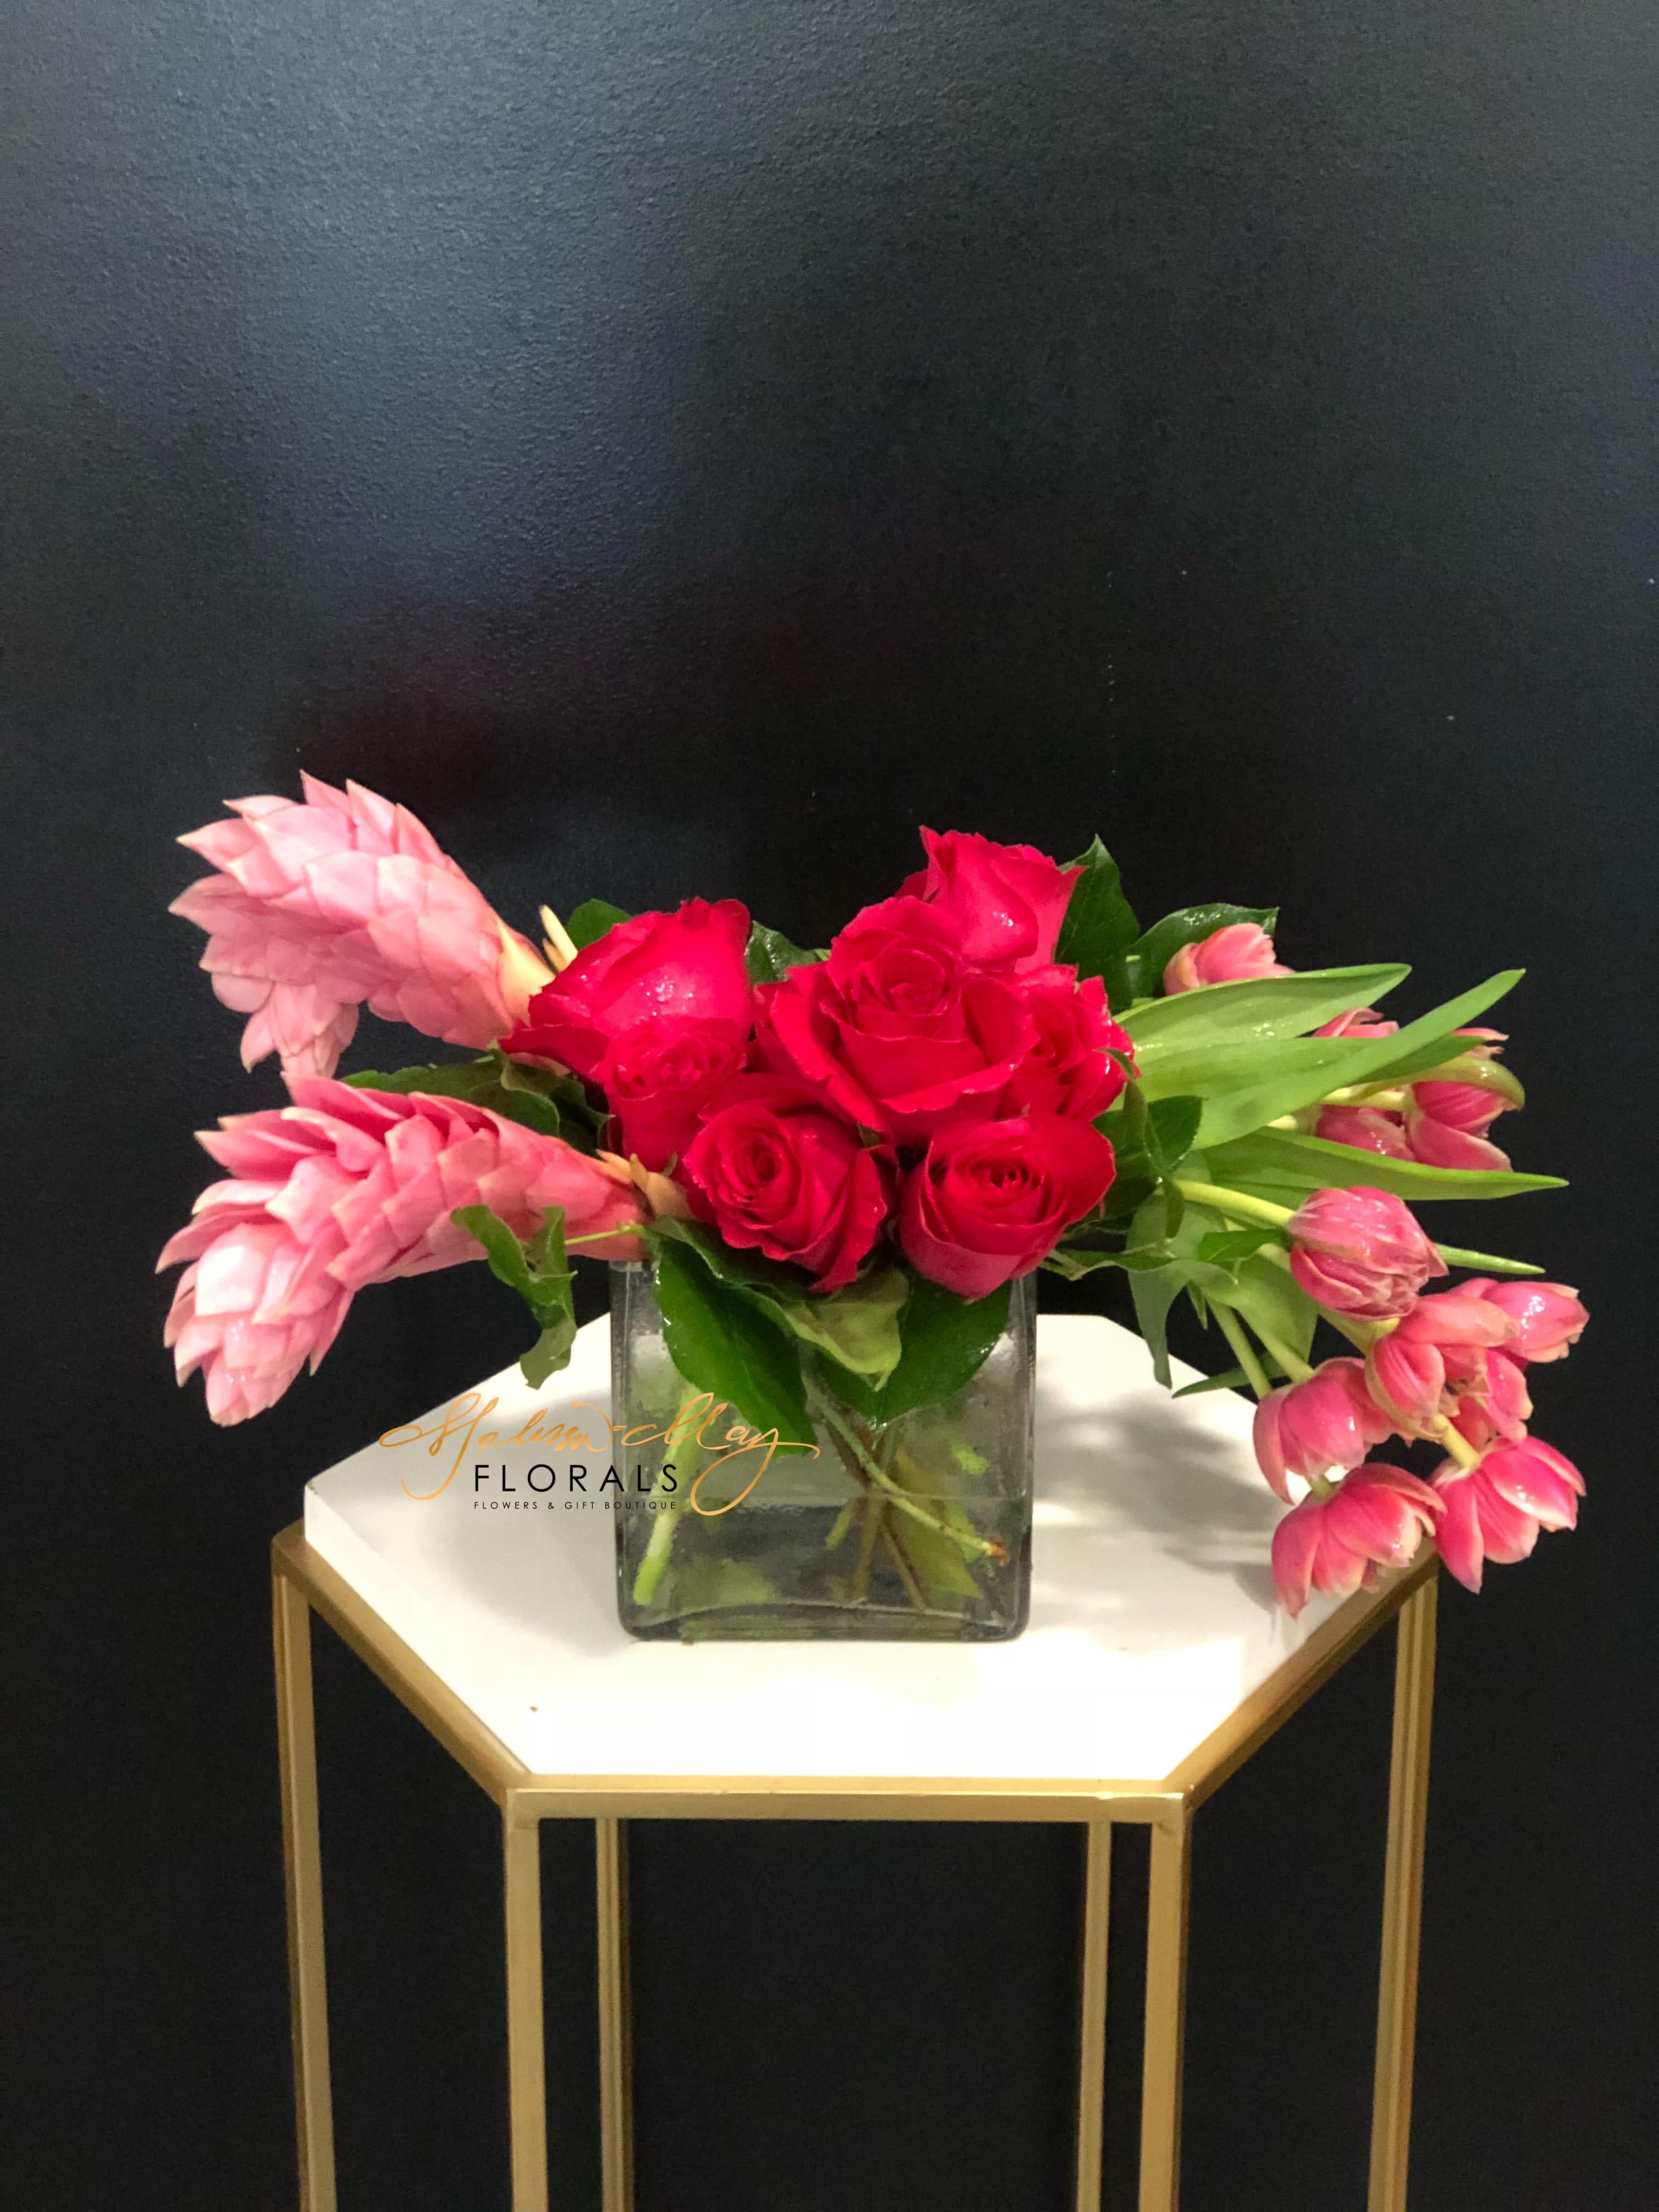 Rosey Pinks By Melissa May Florals